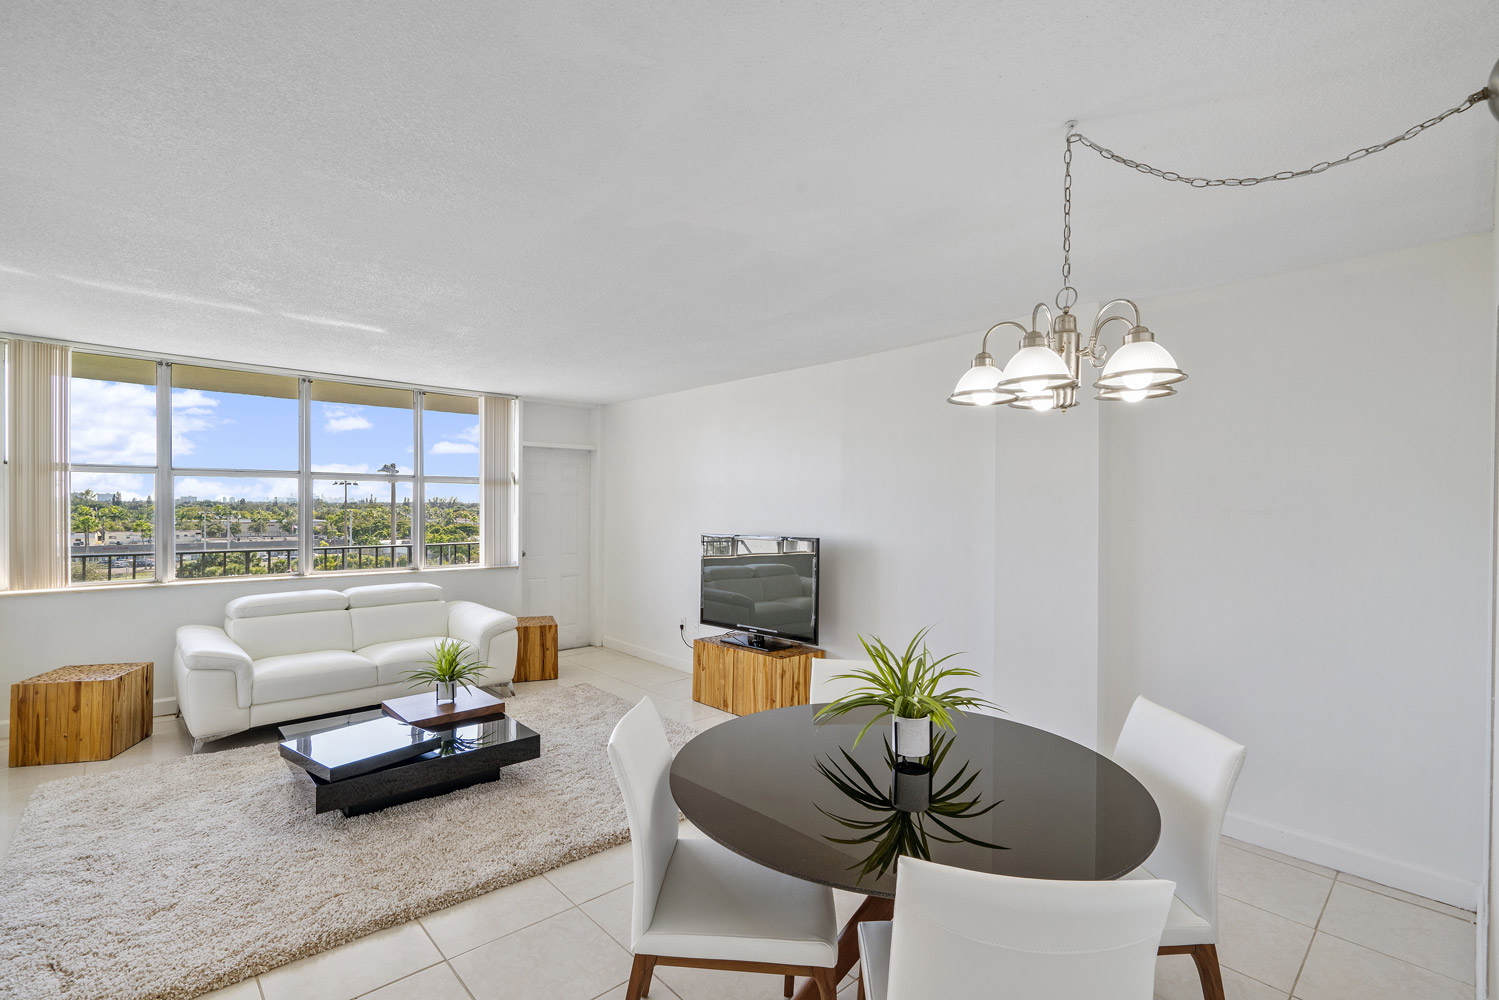 Lounge Area  at Grand Island Square Apartments in North Miami Beach, Florida